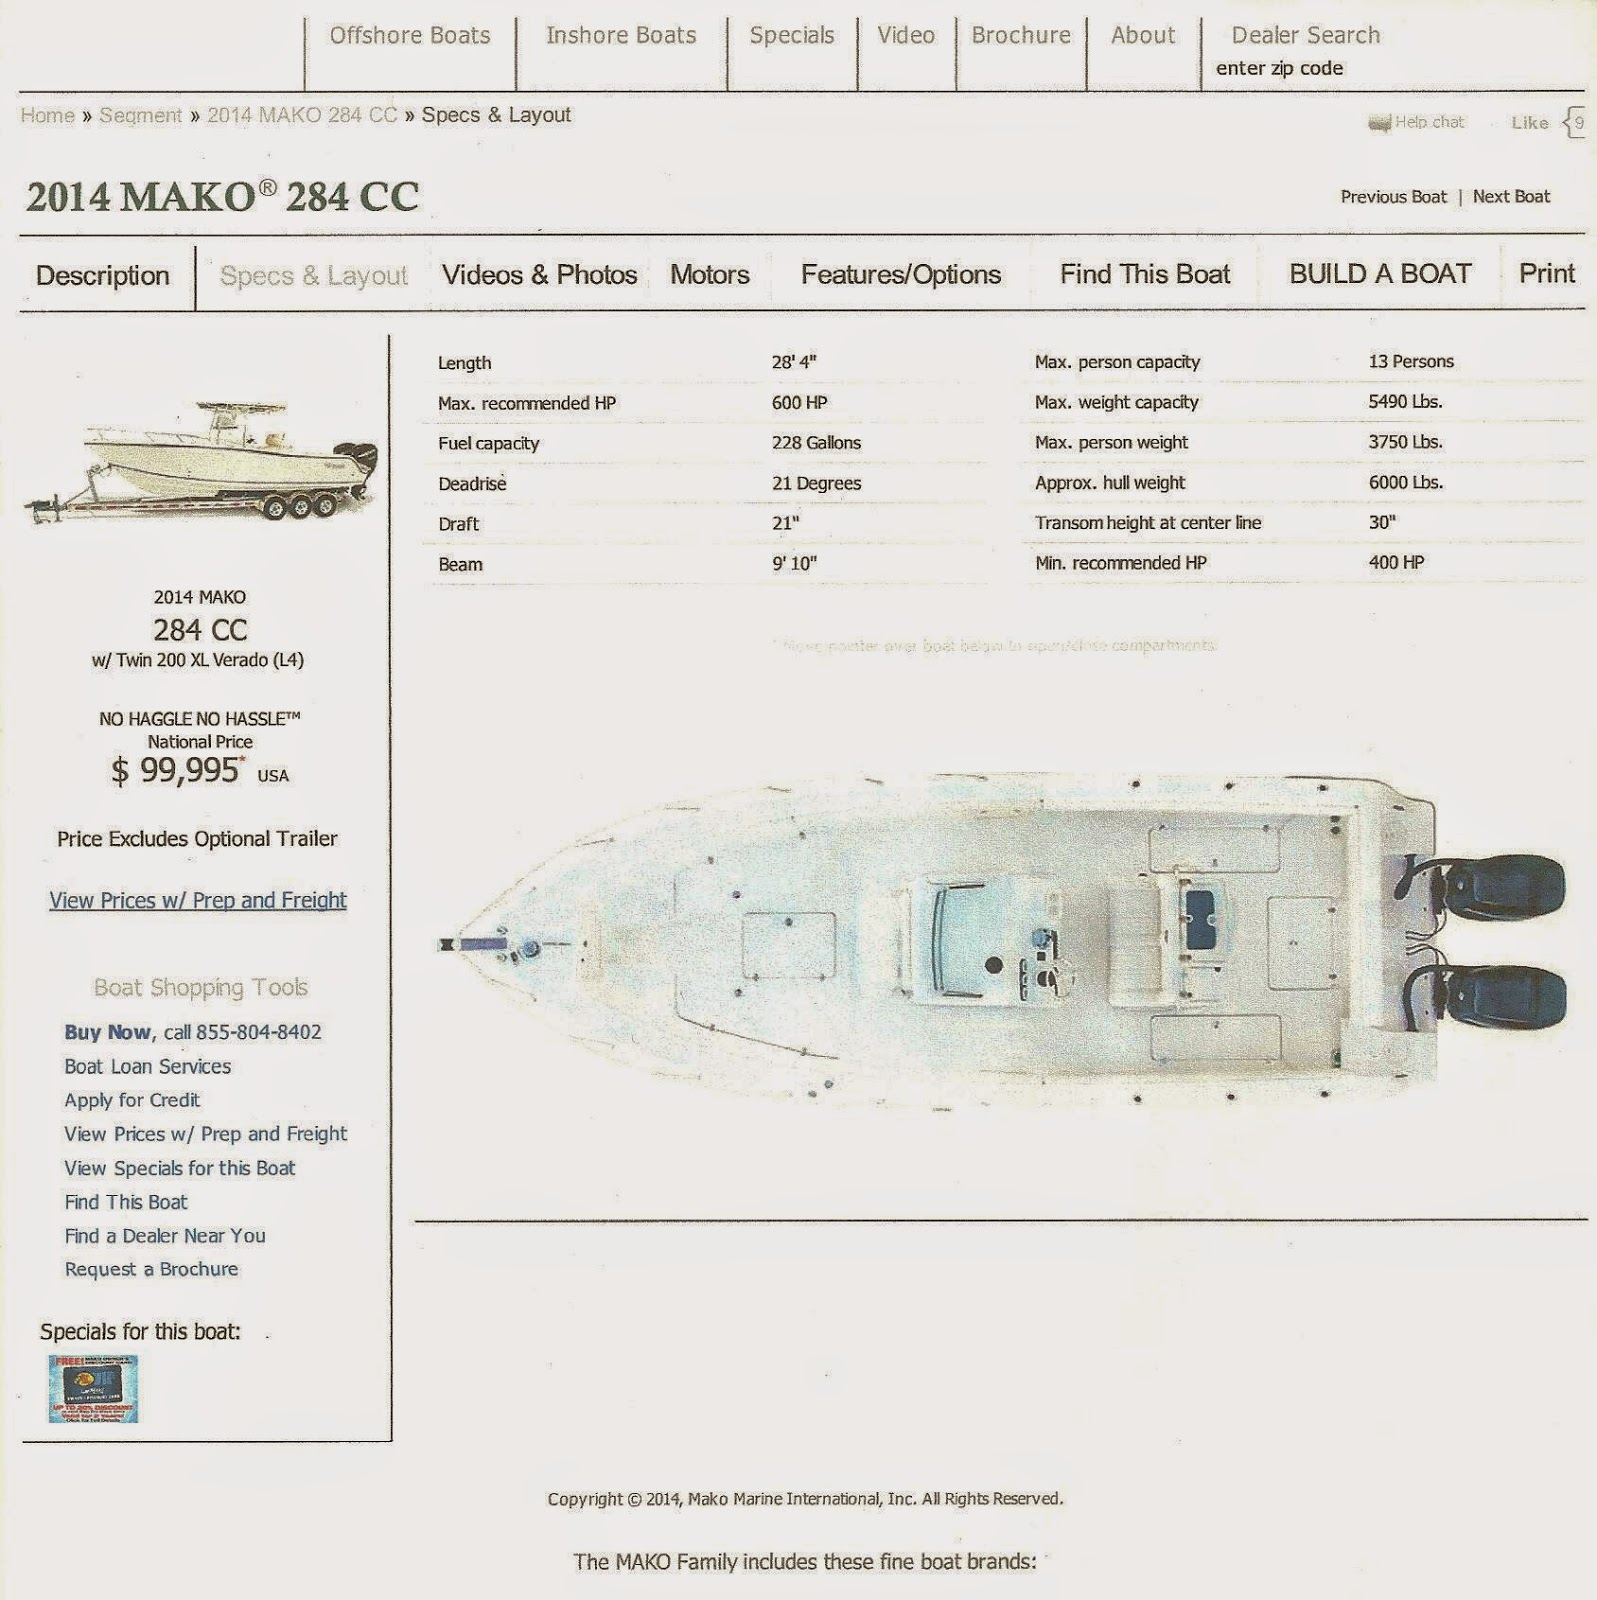 April 2016 Download Boat Plans Verado Wiring Diagram 2014 I Have Added The Two Pods To Offer Protection And Utilities One For A Small Head Other Personal Gear Provisions My Knowledge There Are